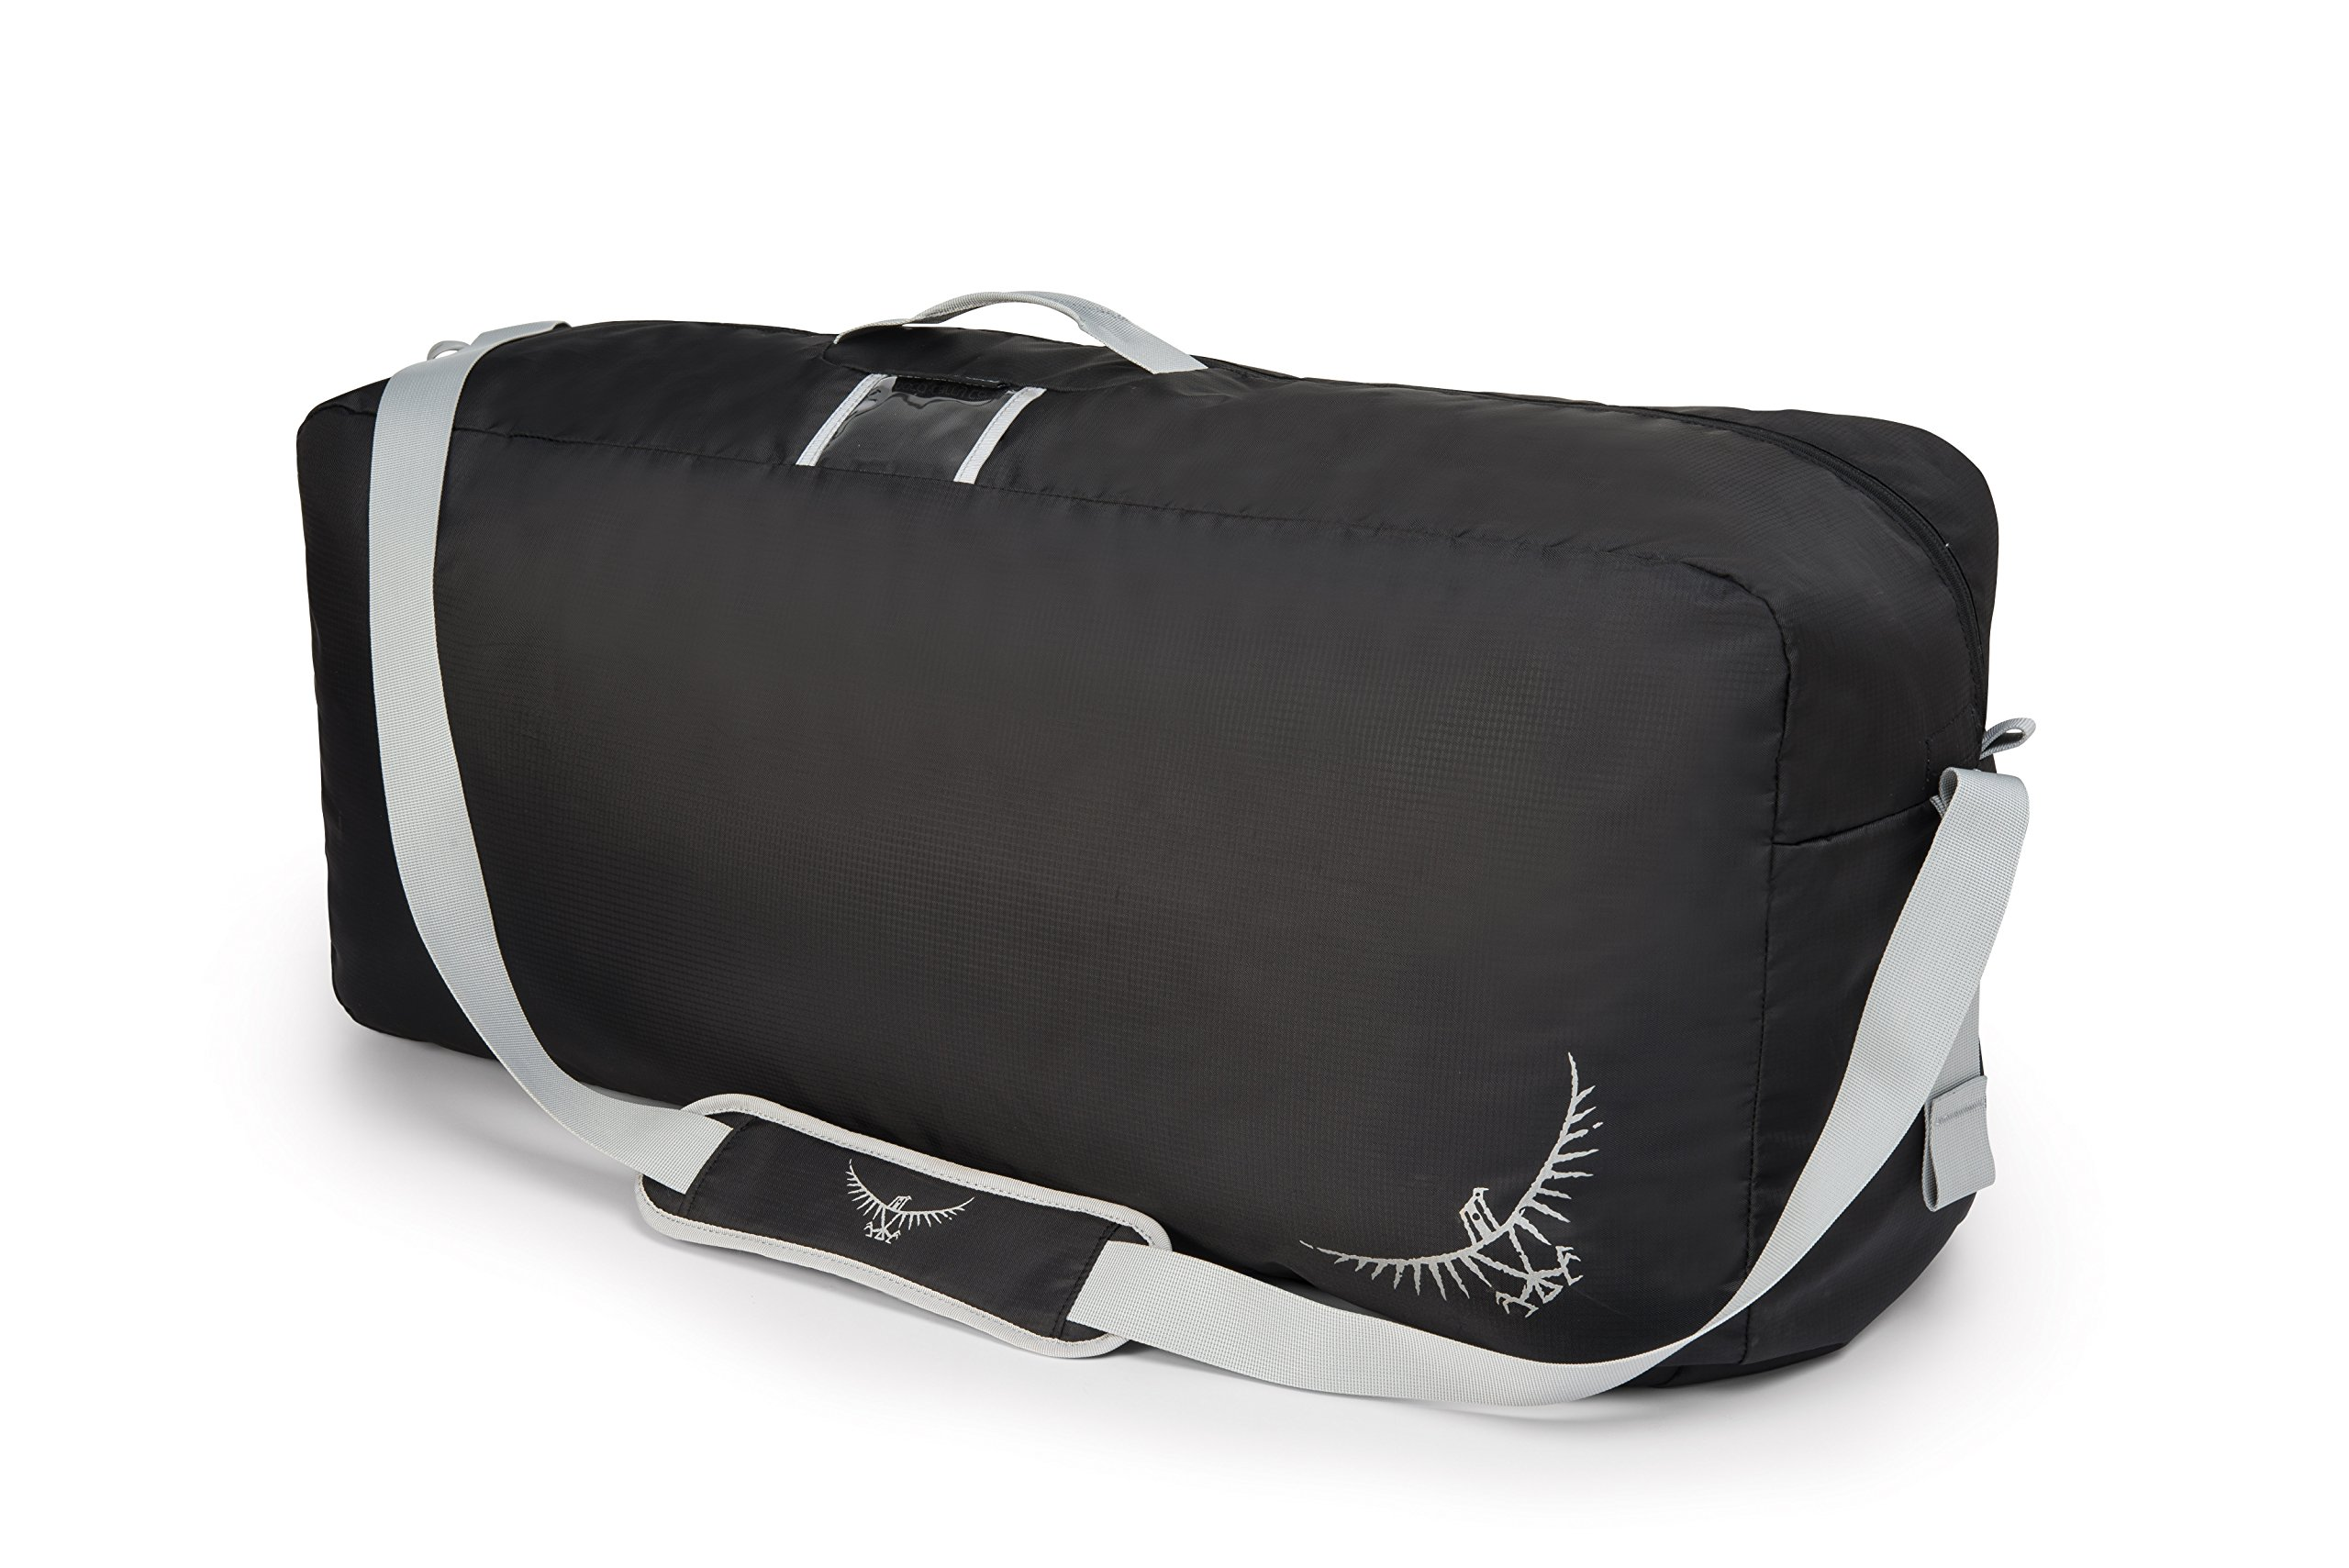 Osprey One size Poco Carrying Case - CHARCOAL GREY